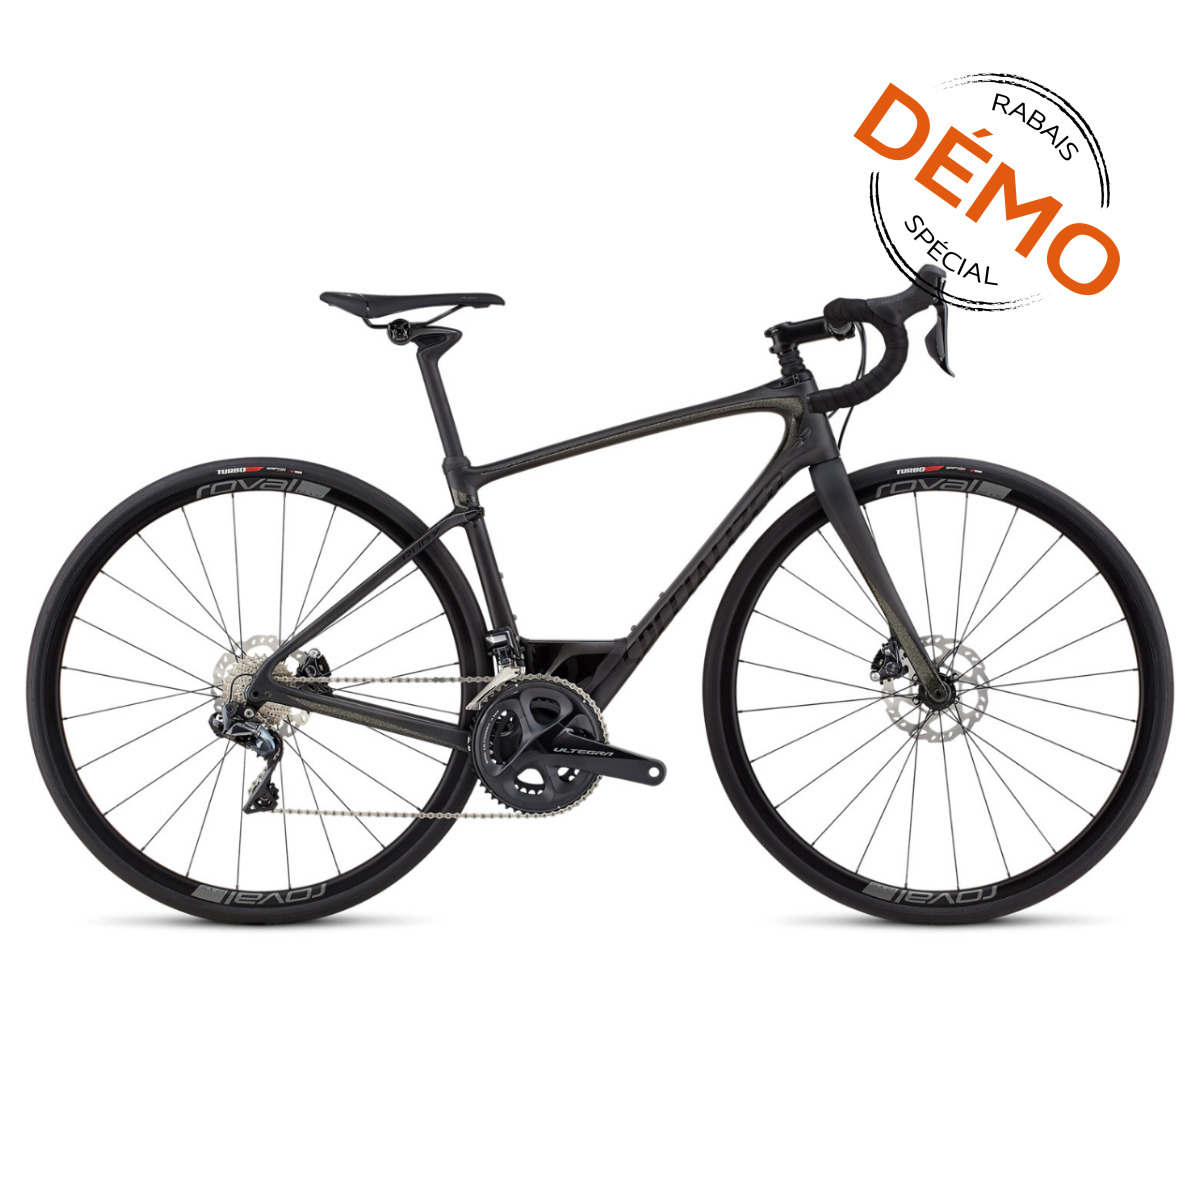 SPECIALIZED RUBY EXPERT UDI2/3T DISCUS NOIR 51CM DEMO